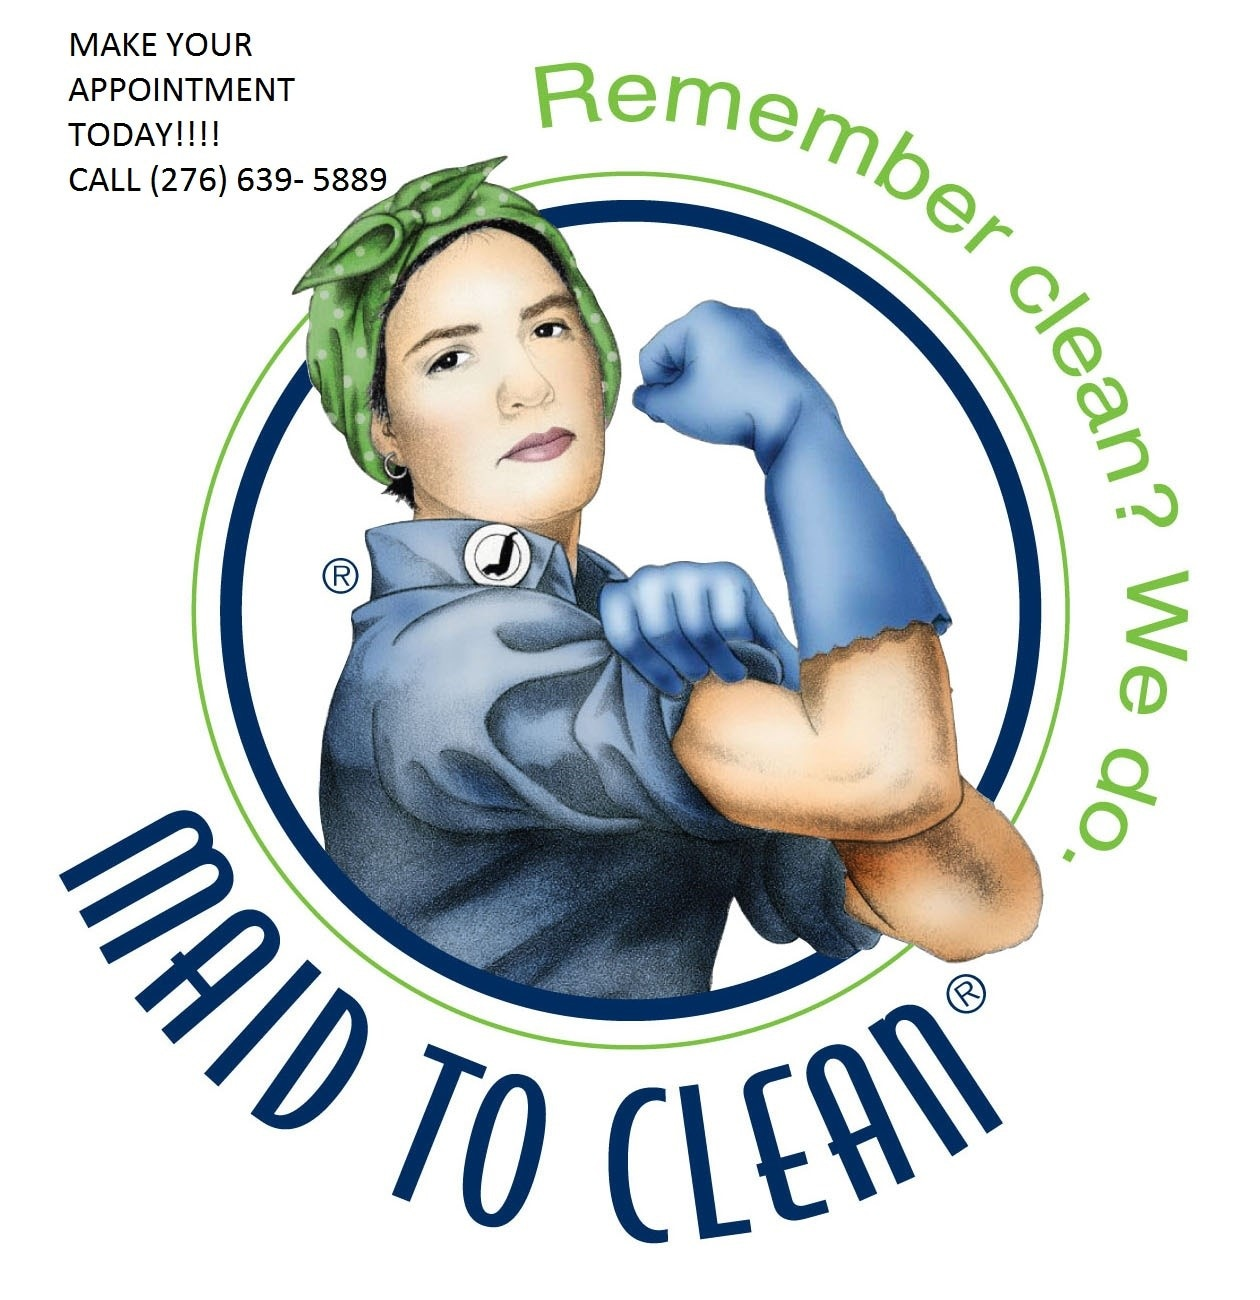 Petite Cleaning and Lawn Care Service